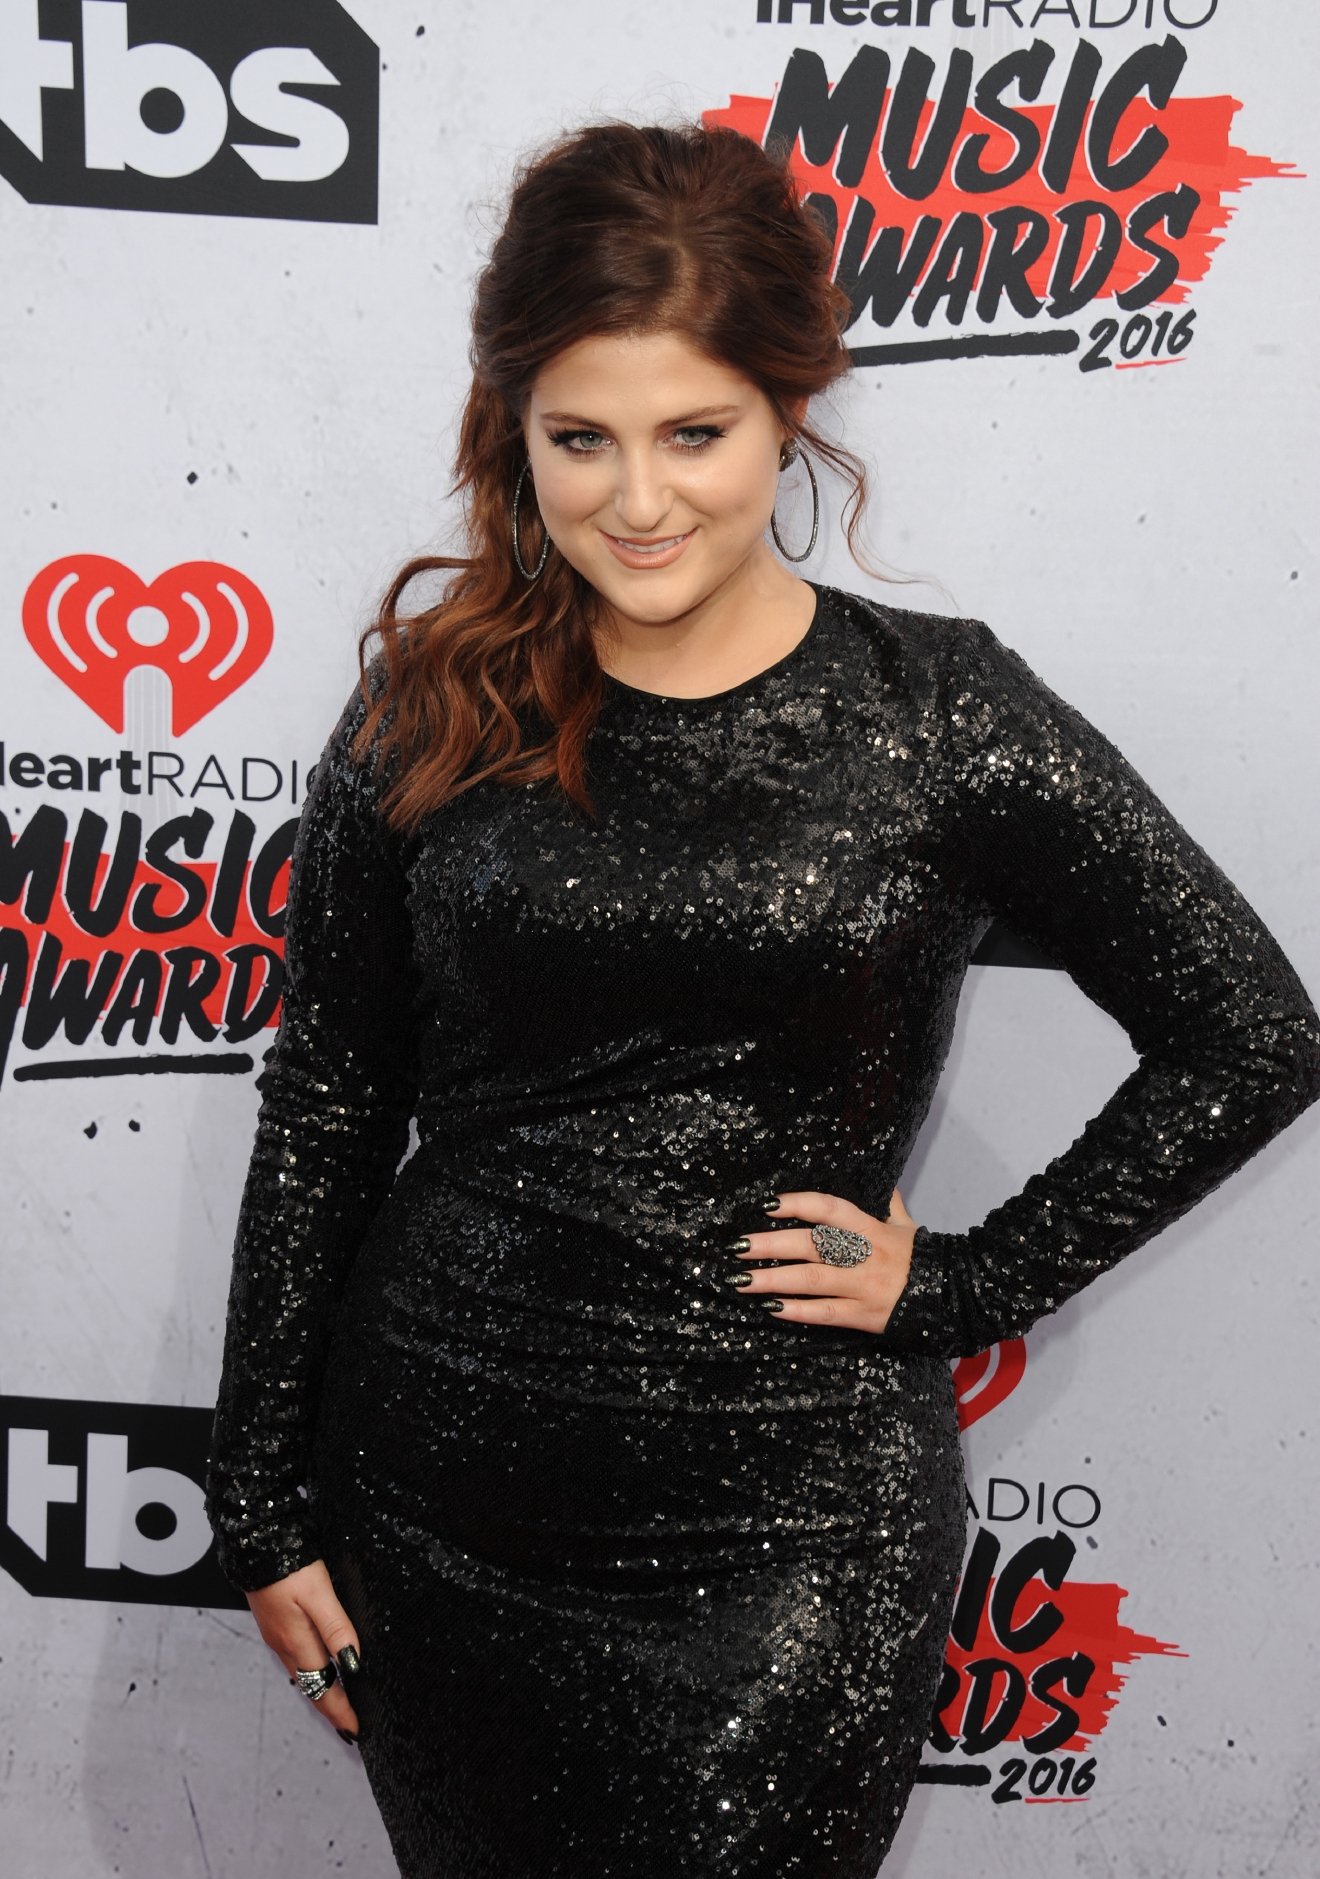 iHeartRadio Music Awards                                    Featuring: Meghan Trainor                  Where: Inglewood, California, United States                  When: 03 Apr 2016                  Credit: FayesVision/WENN.com